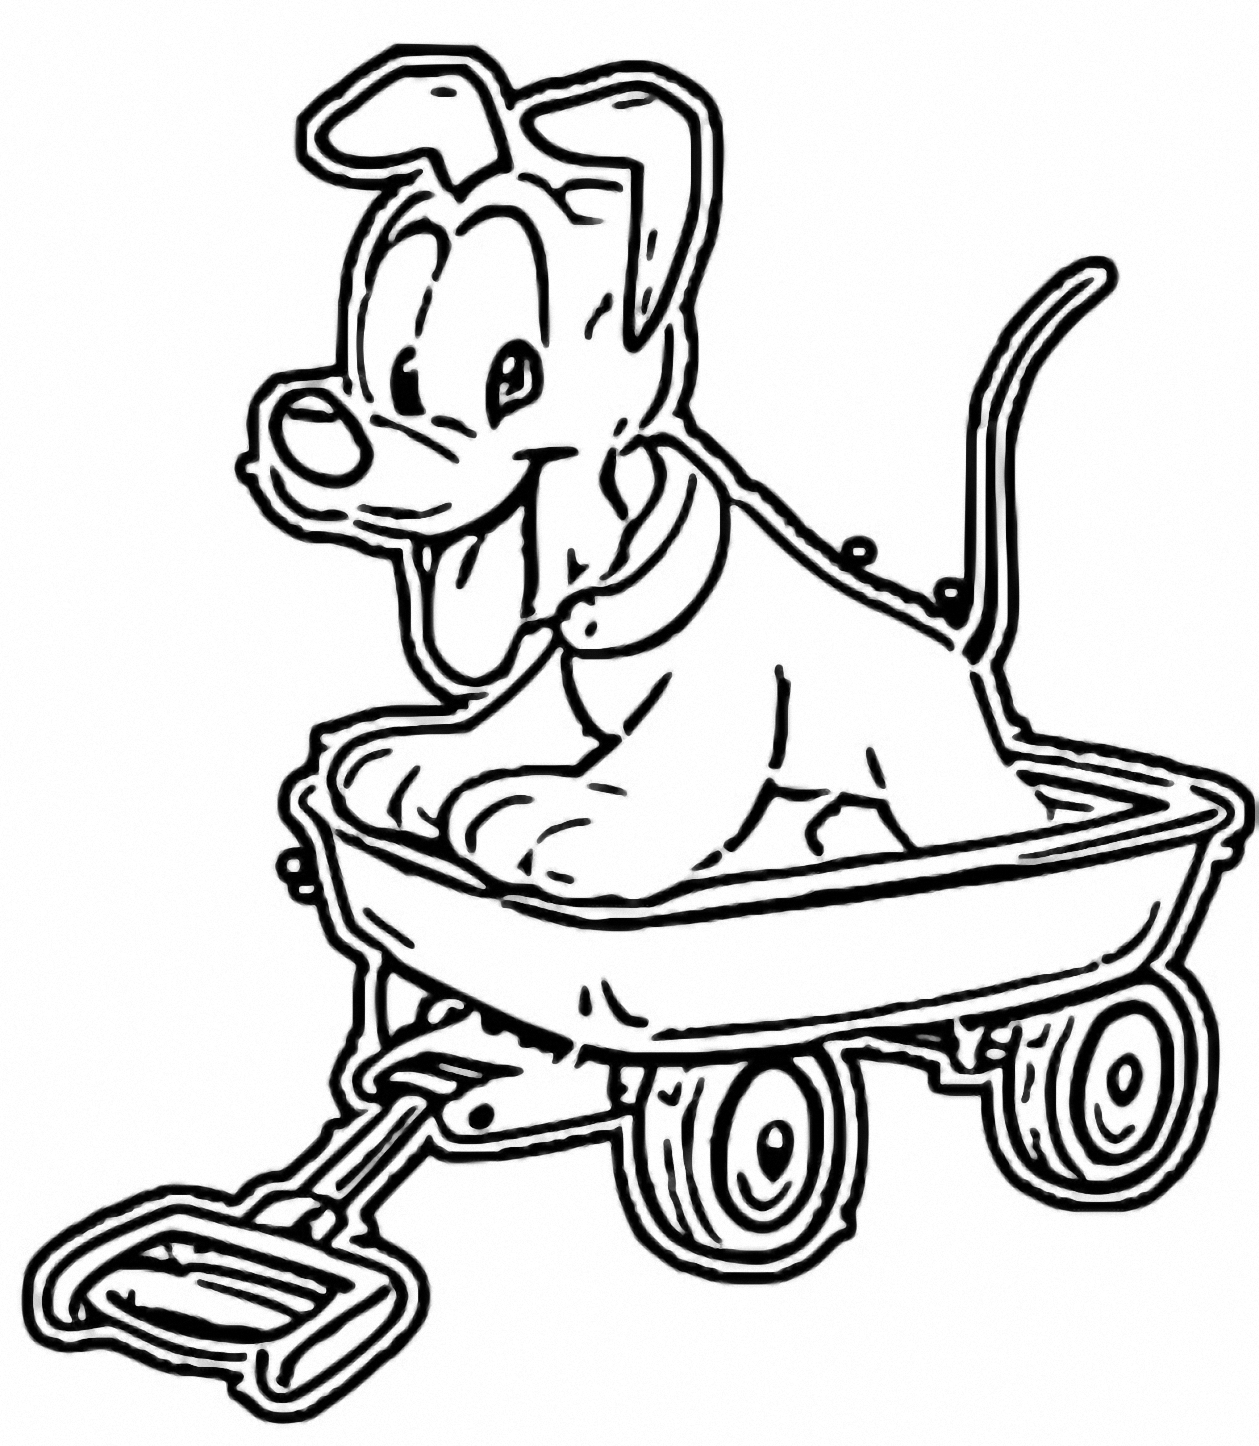 Baby Pluto Coloring Page  073